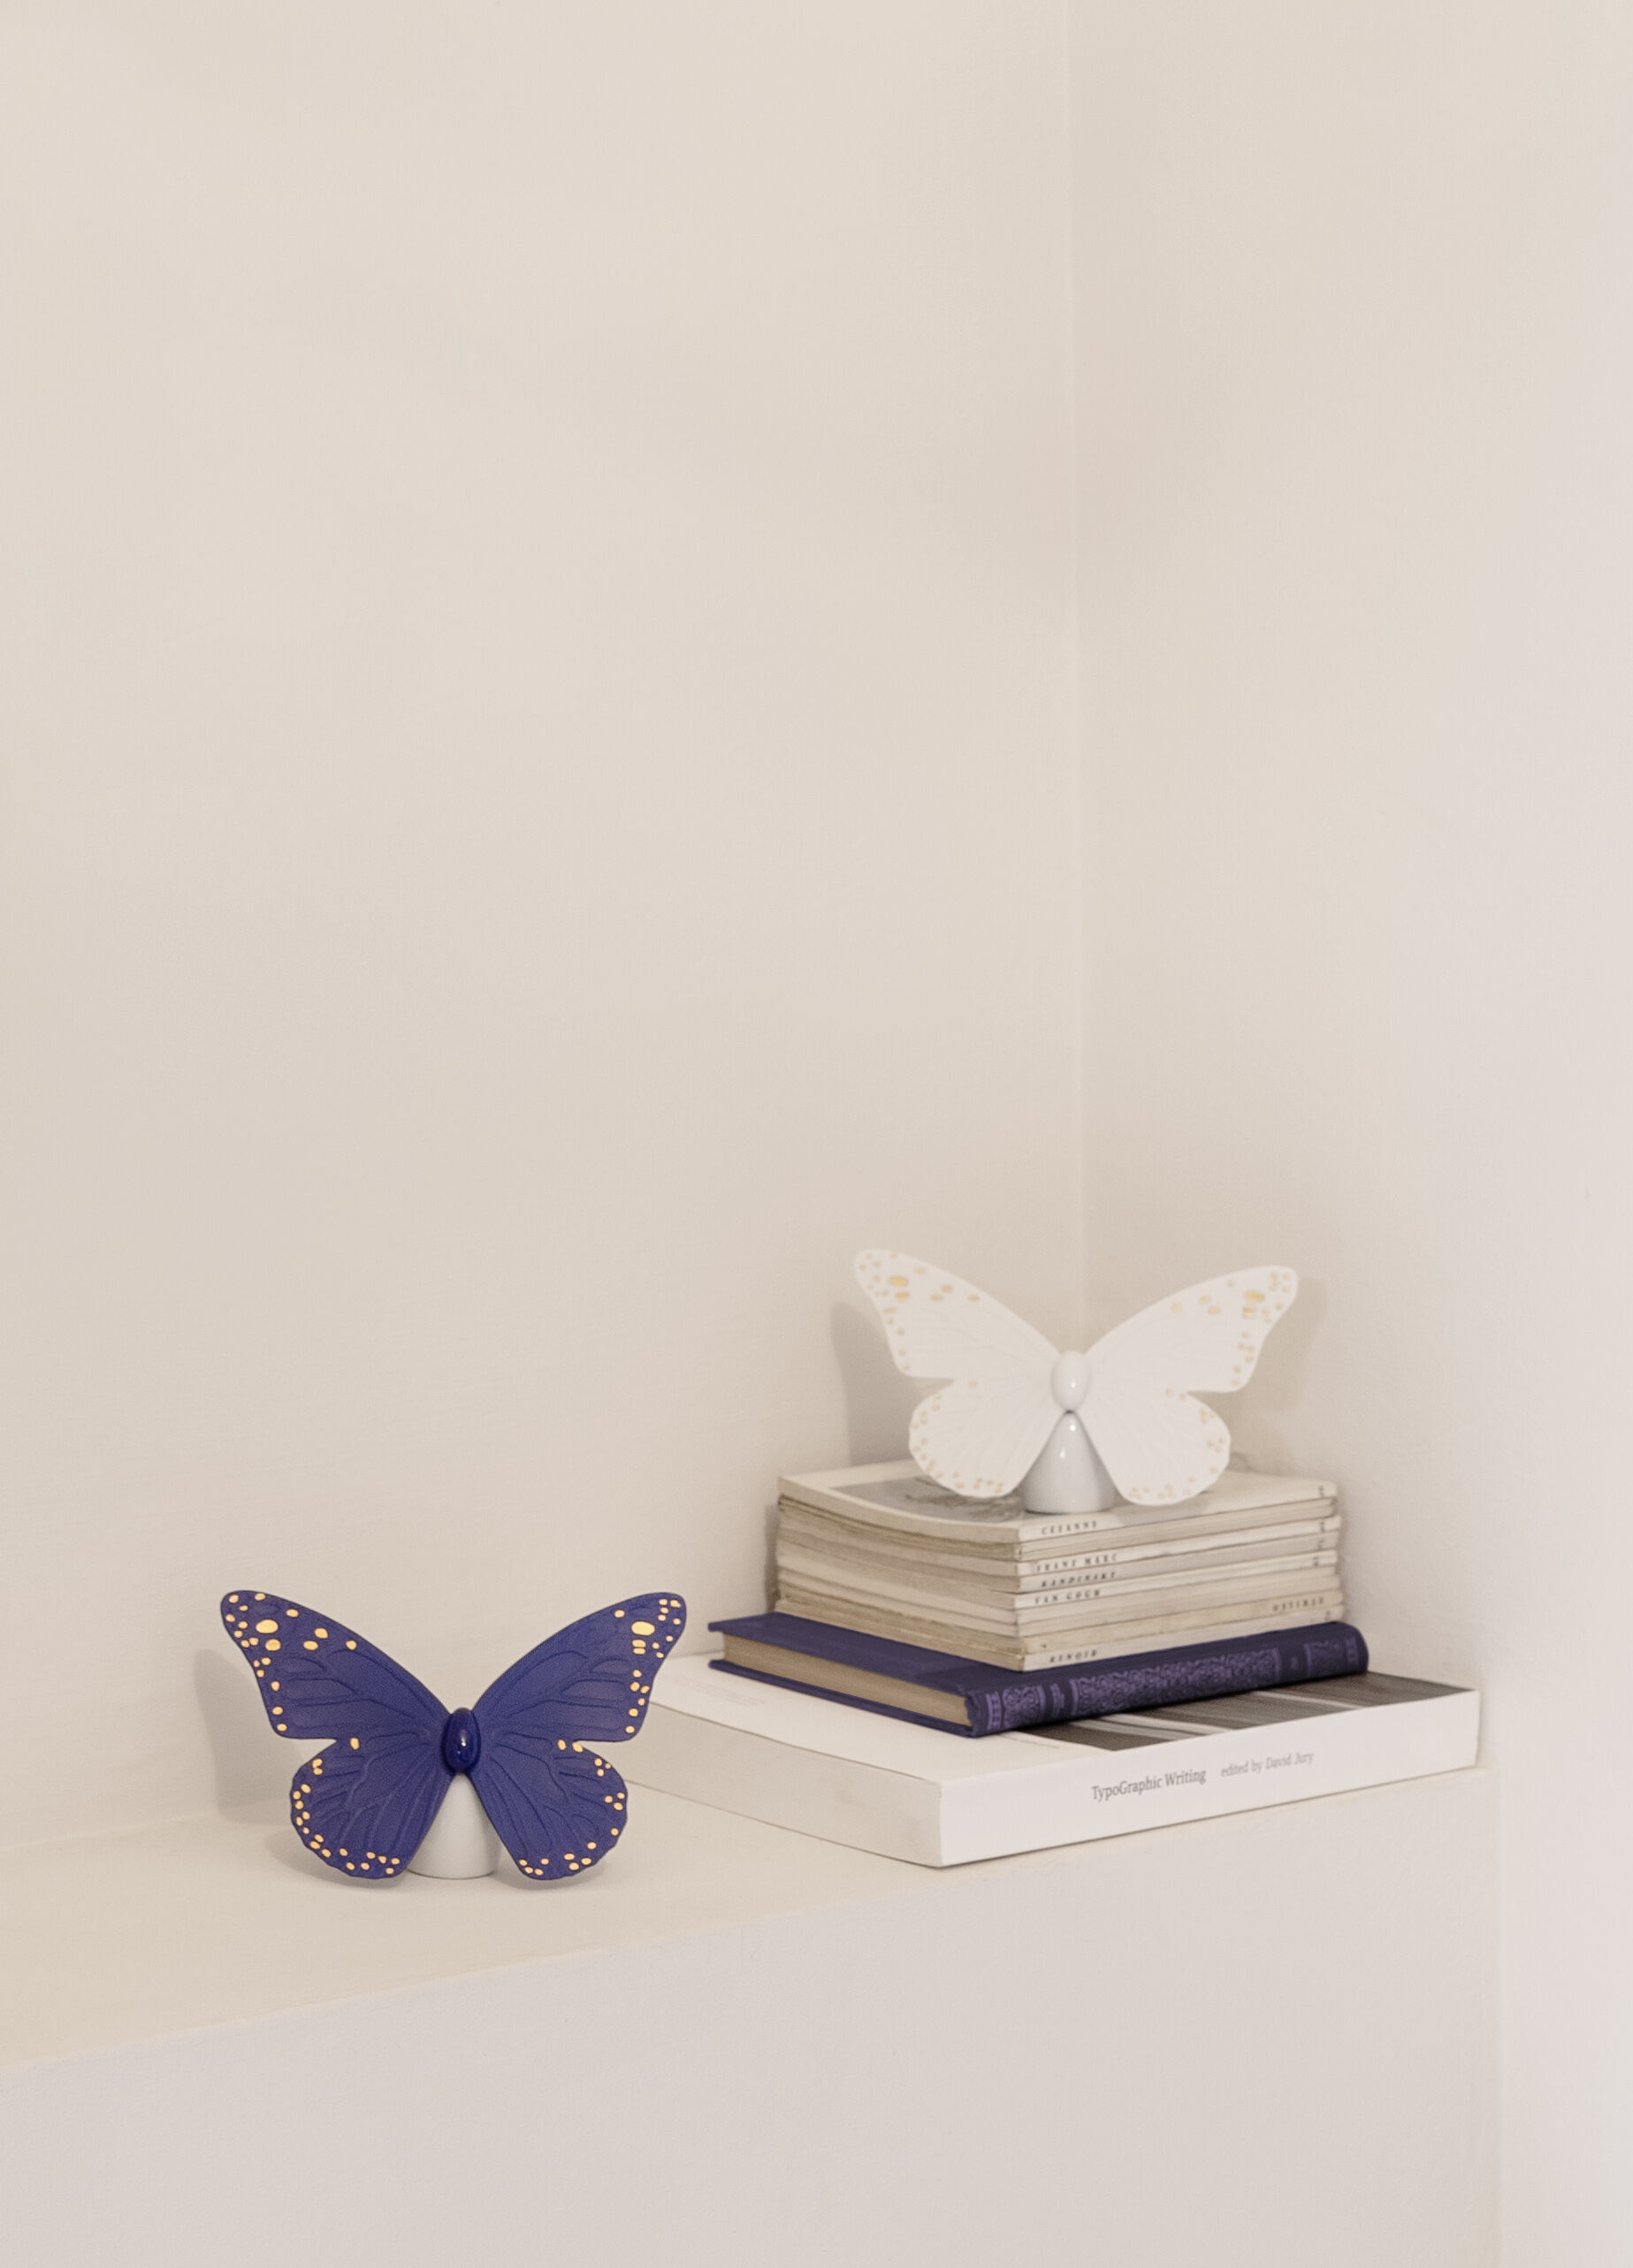 Lladro Butterfly Golden Luster & Blue